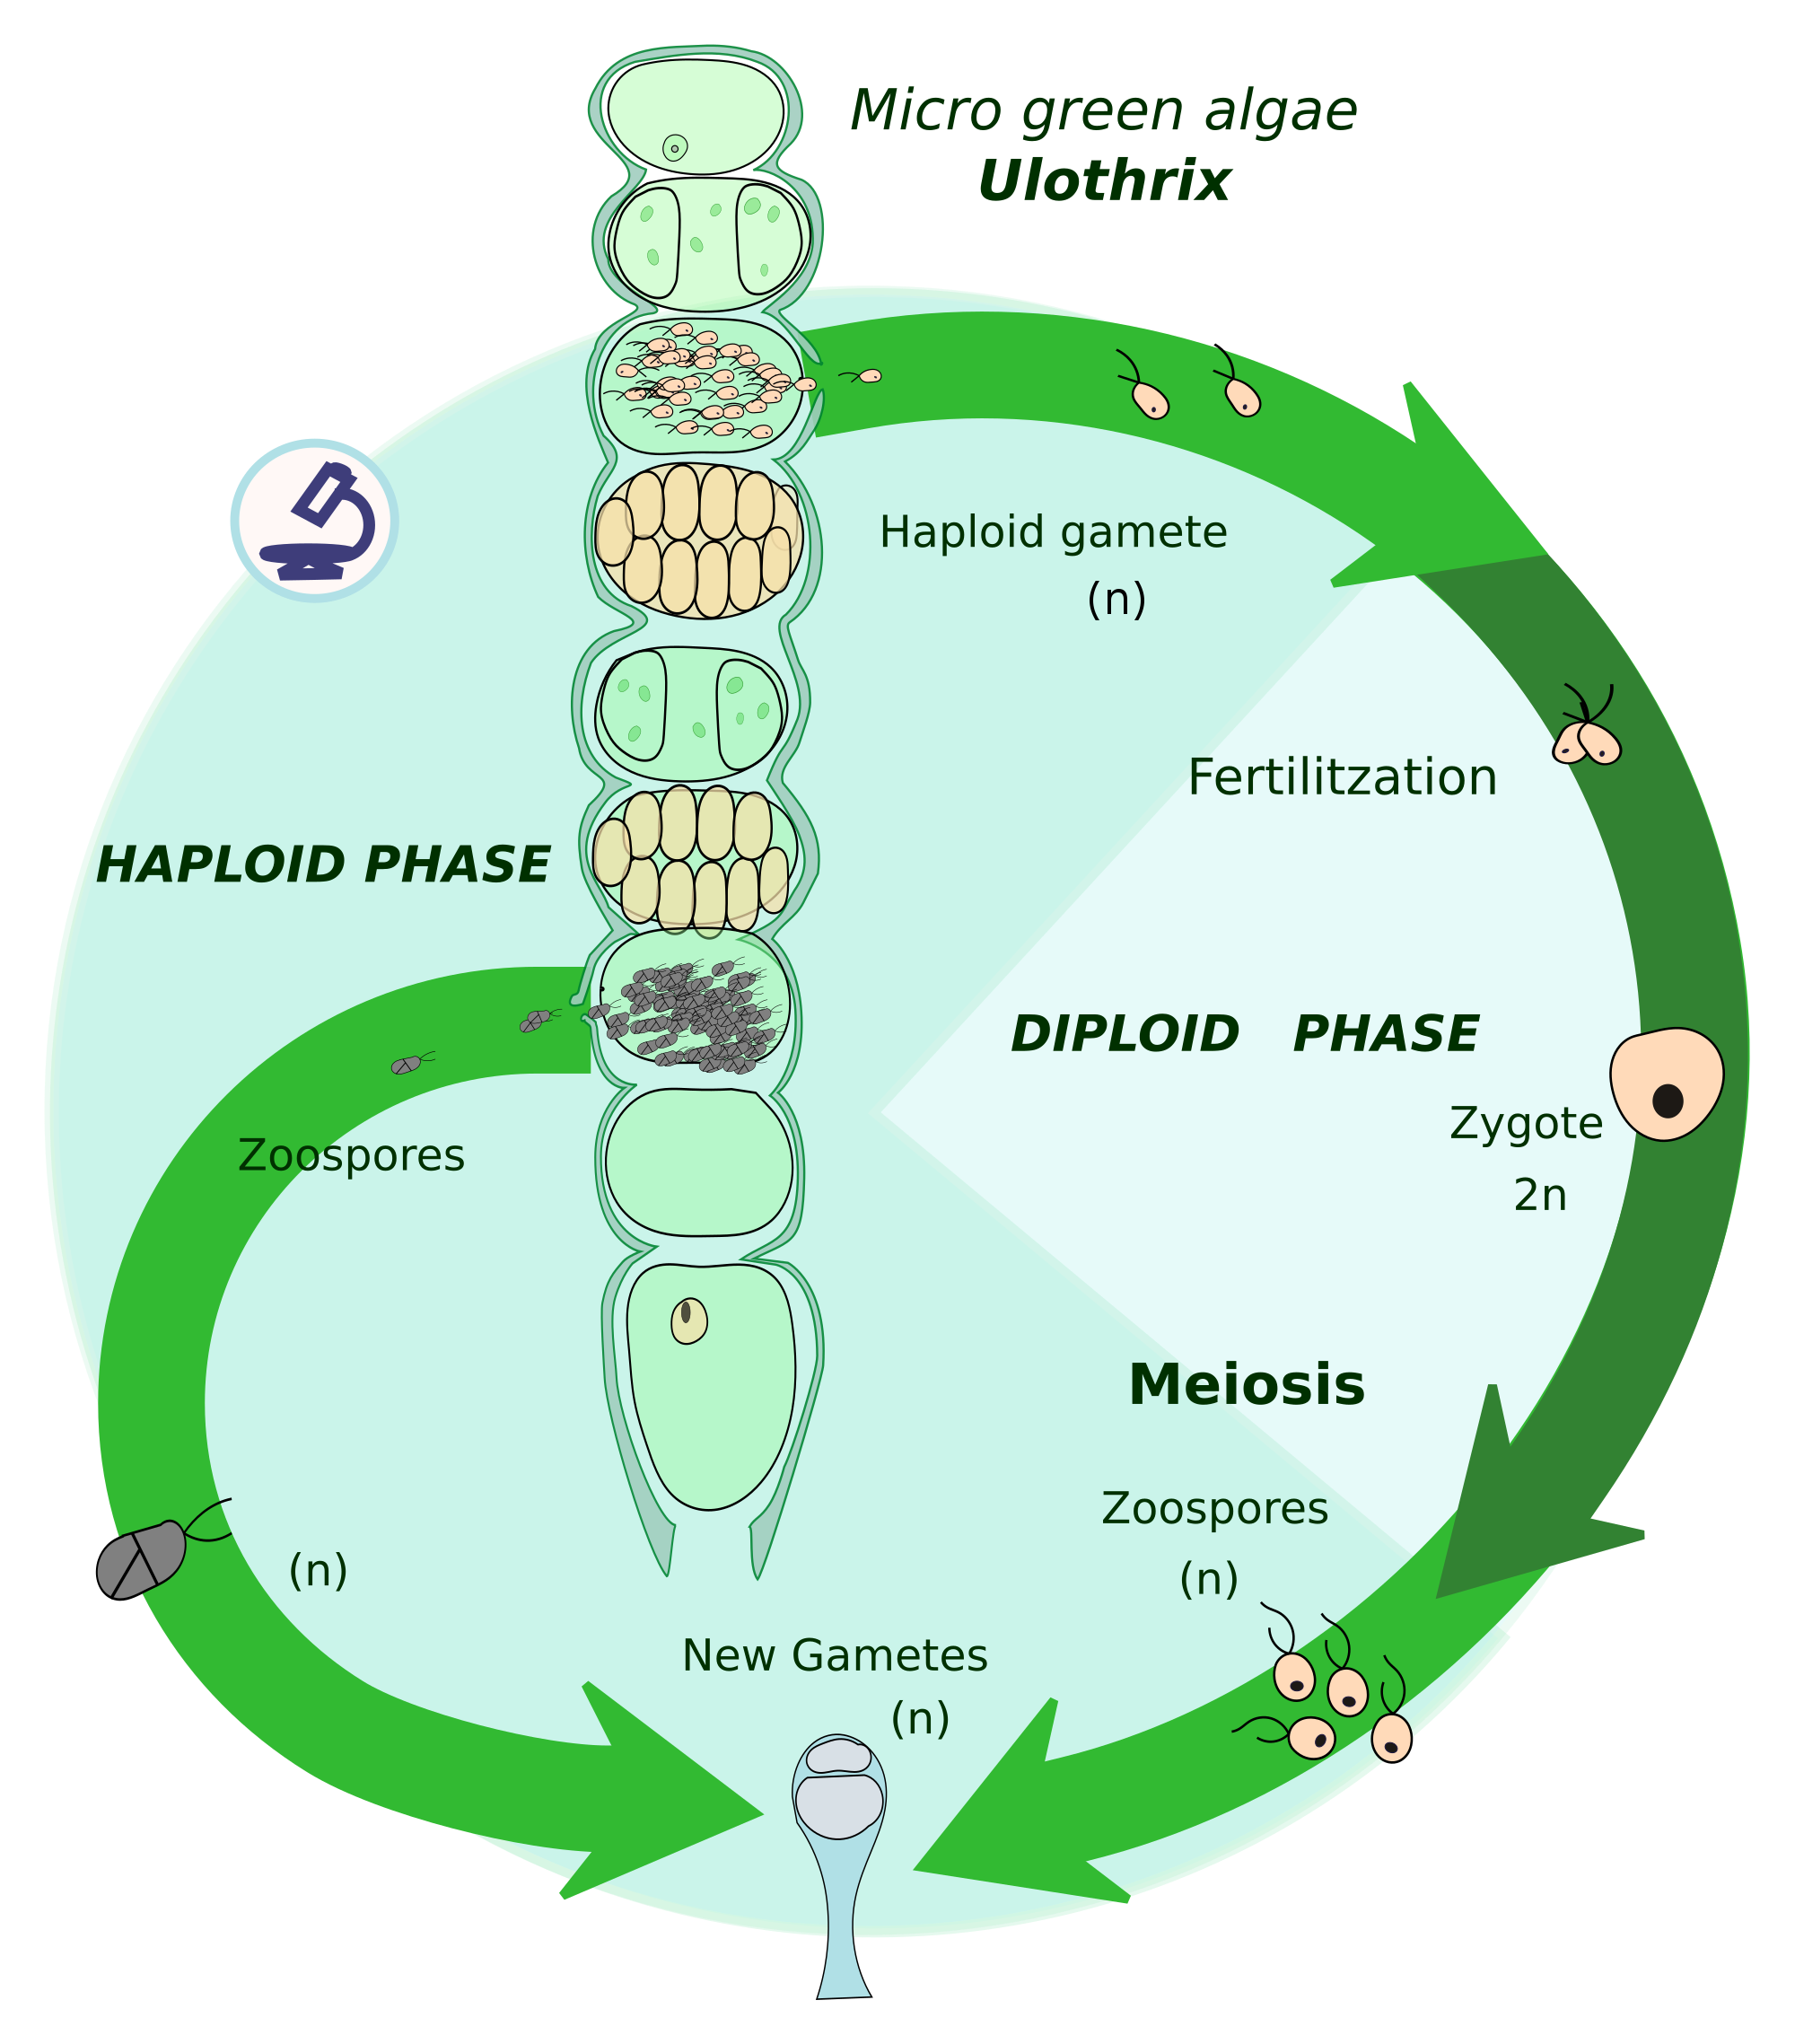 Biological wikipedia haplontic cycleedit. Growth drawing life cycle clip art freeuse